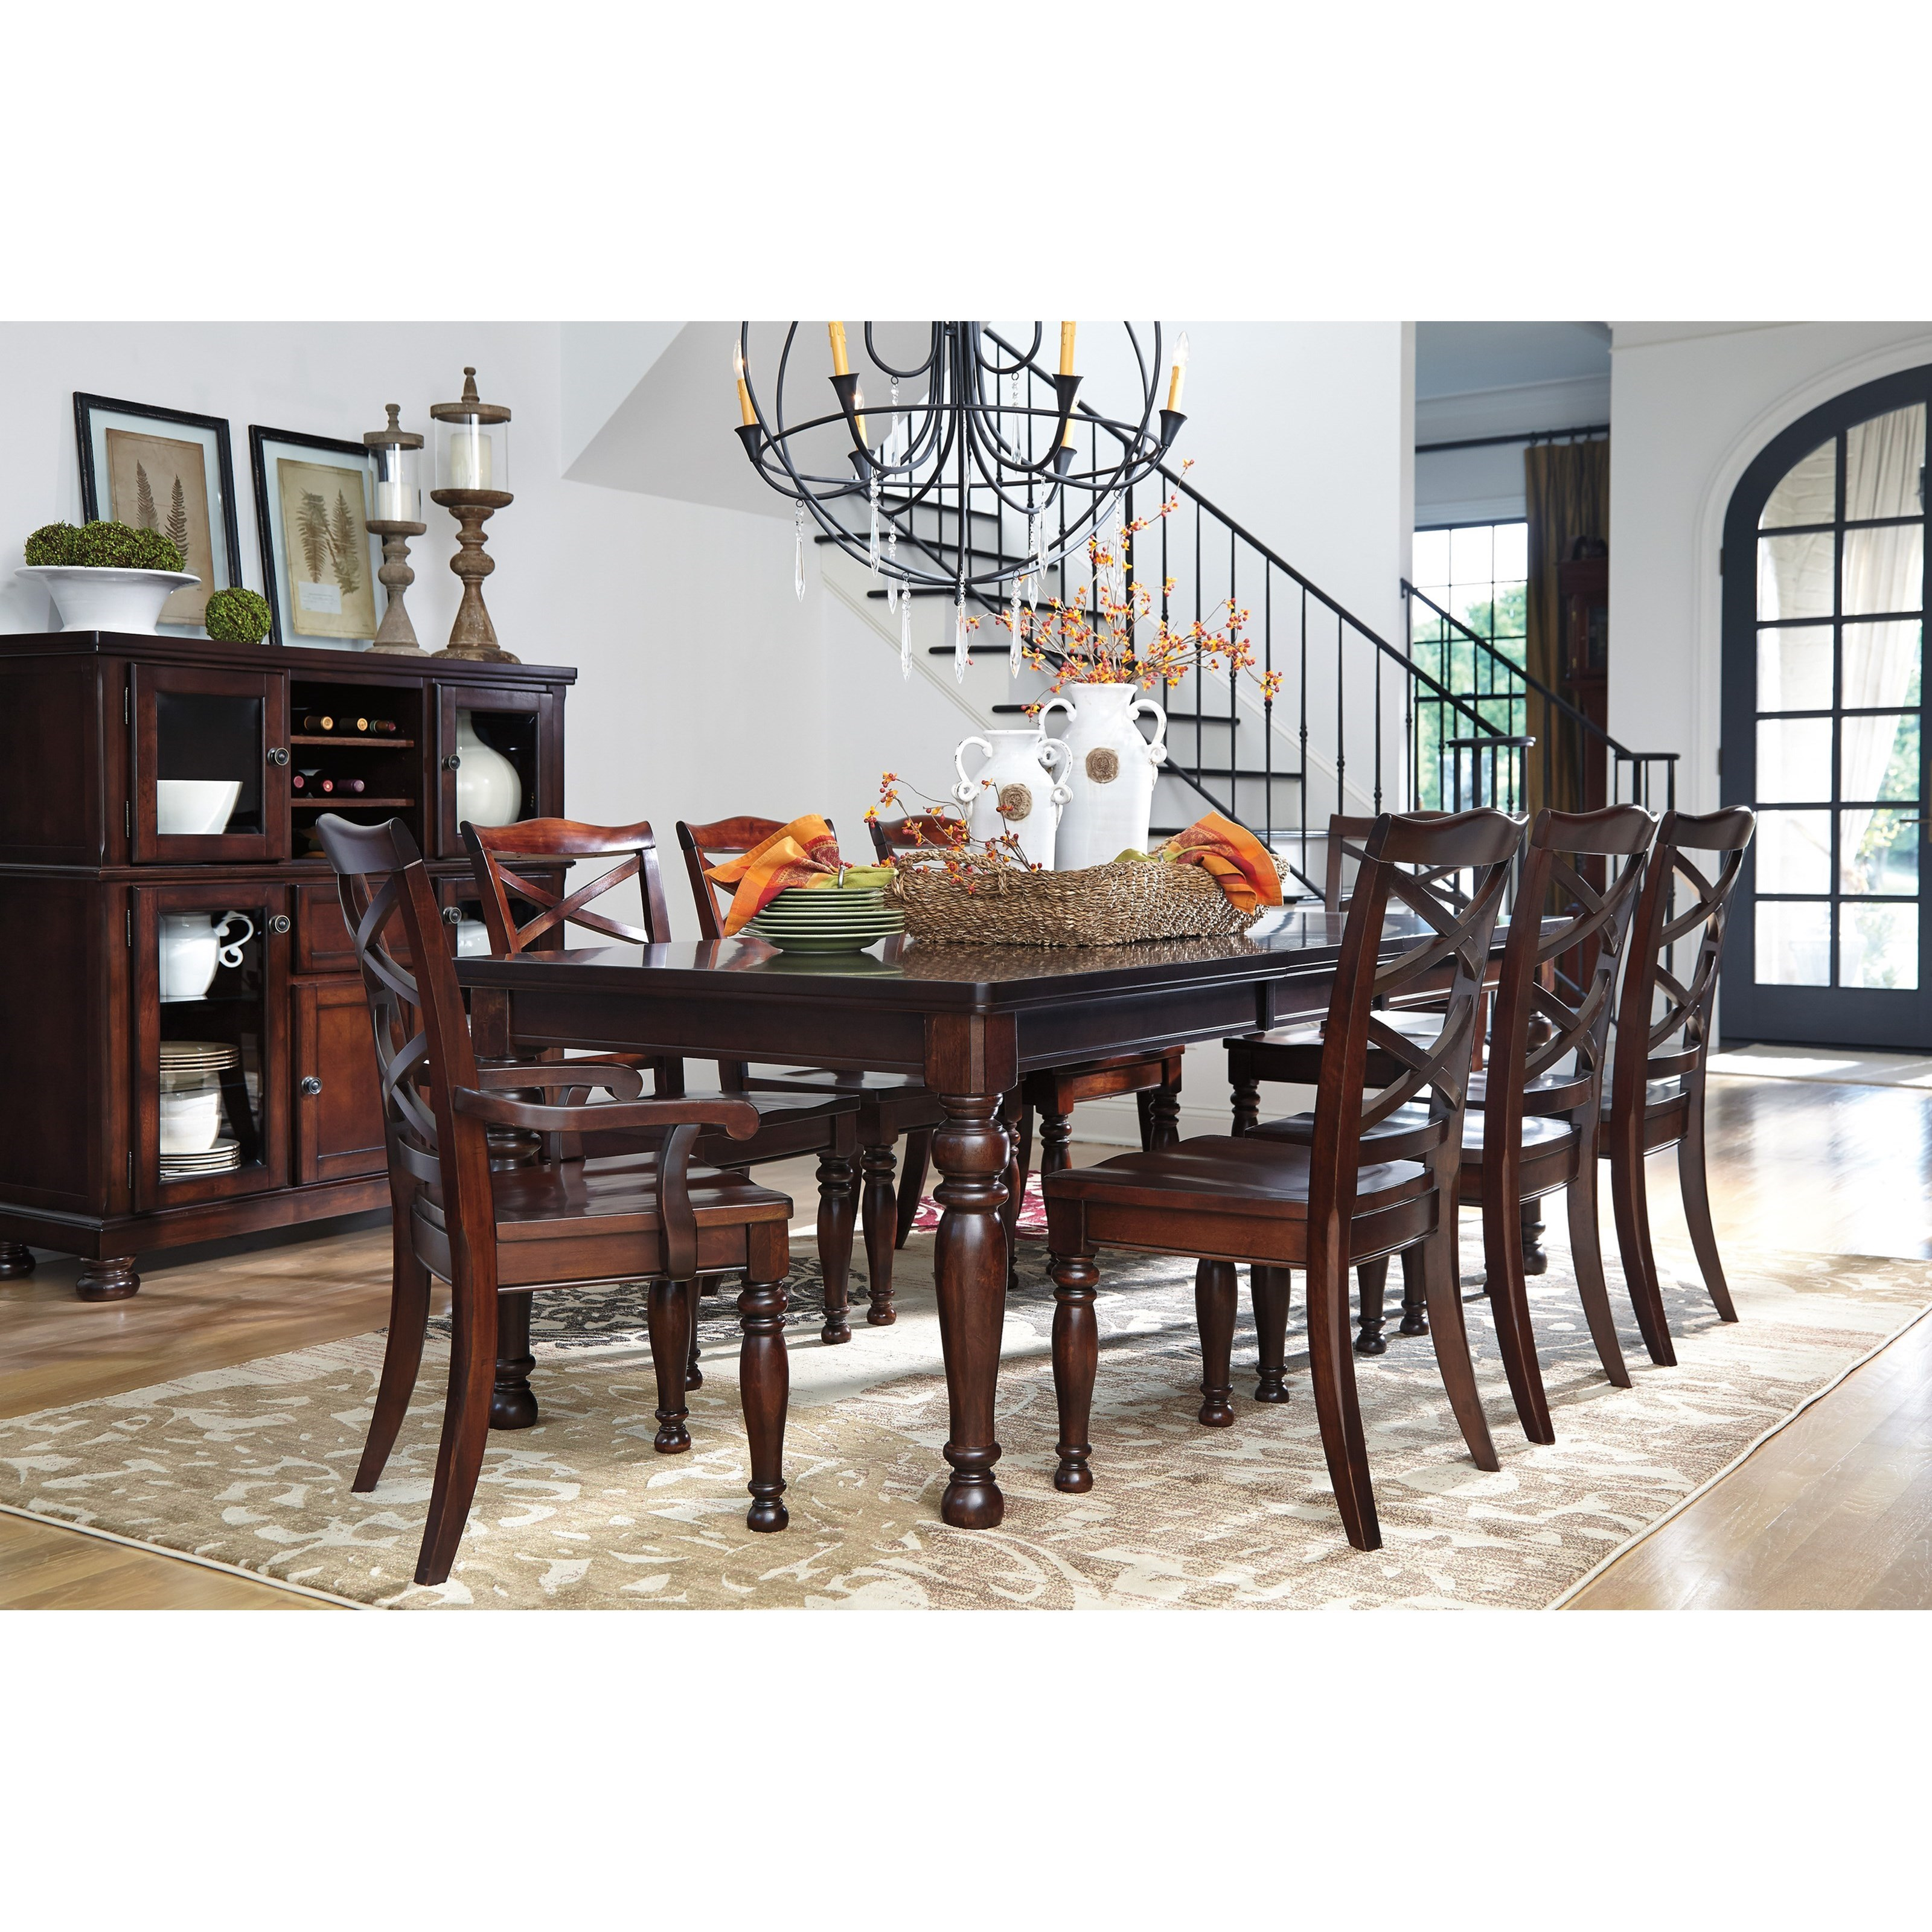 Ashley Furniture Porter Formal Dining Room Group